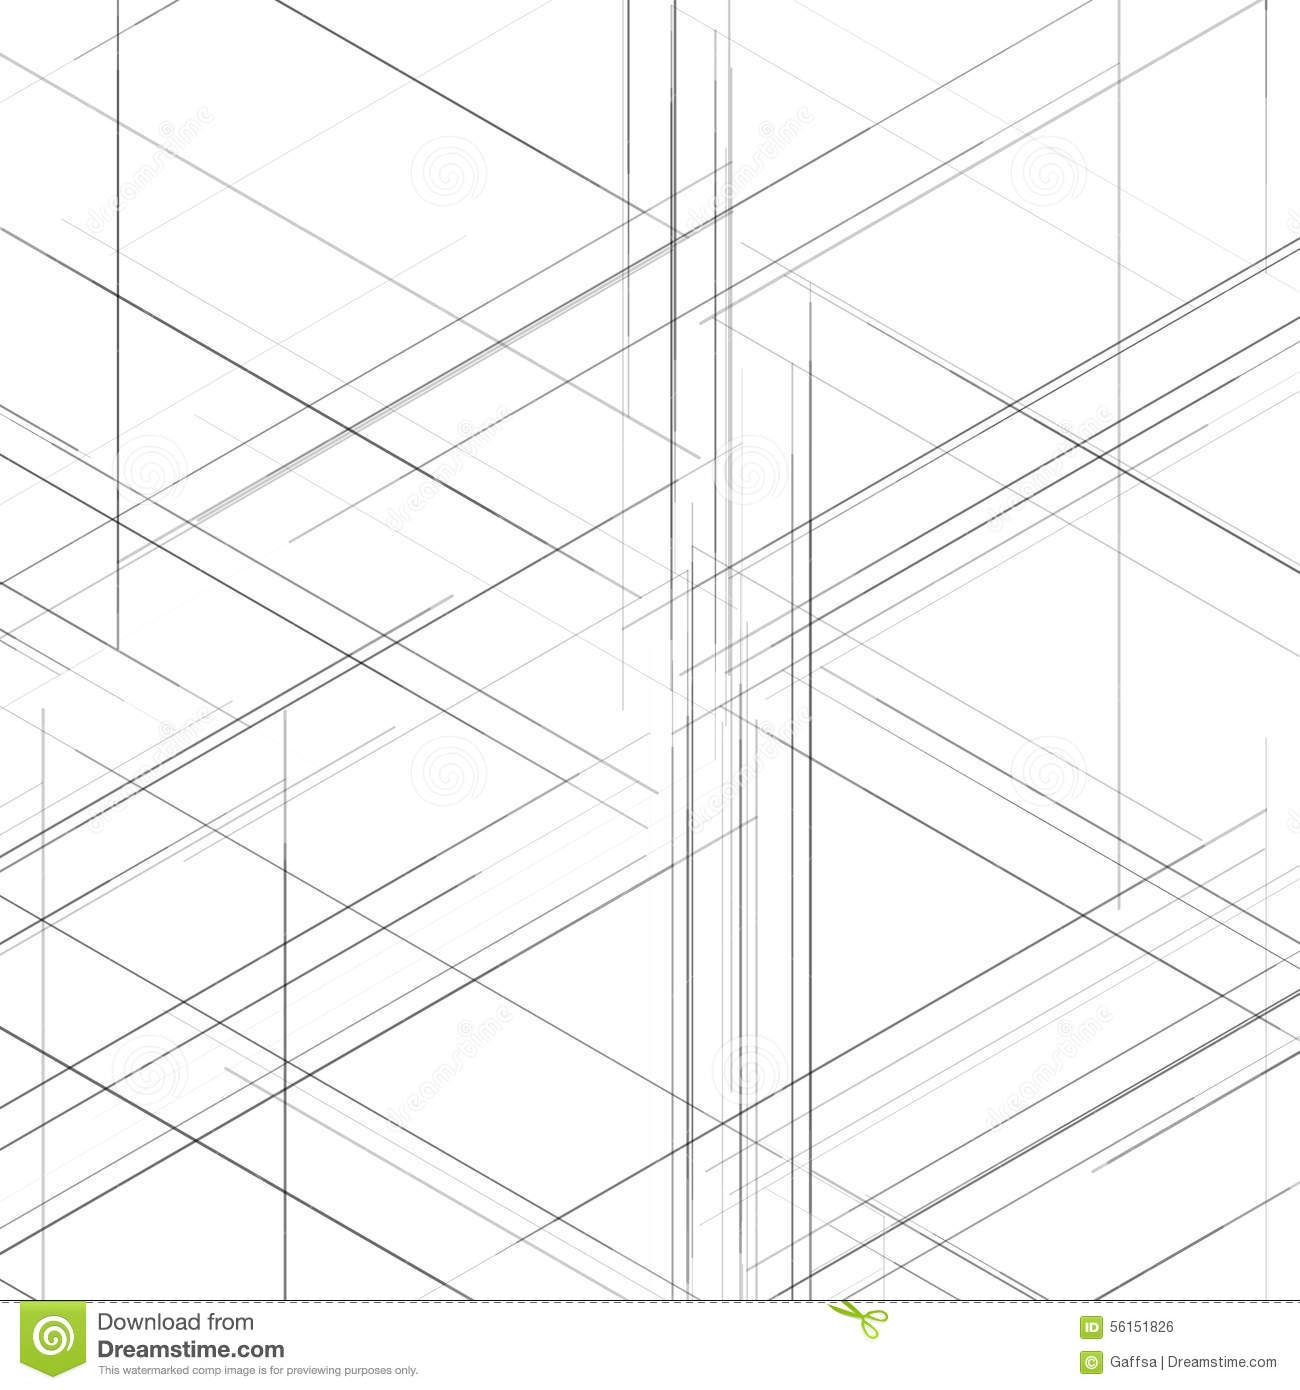 Abstract isometric computer generated 3d blueprint stock vector download abstract isometric computer generated 3d blueprint stock vector illustration of backdrop energy malvernweather Gallery